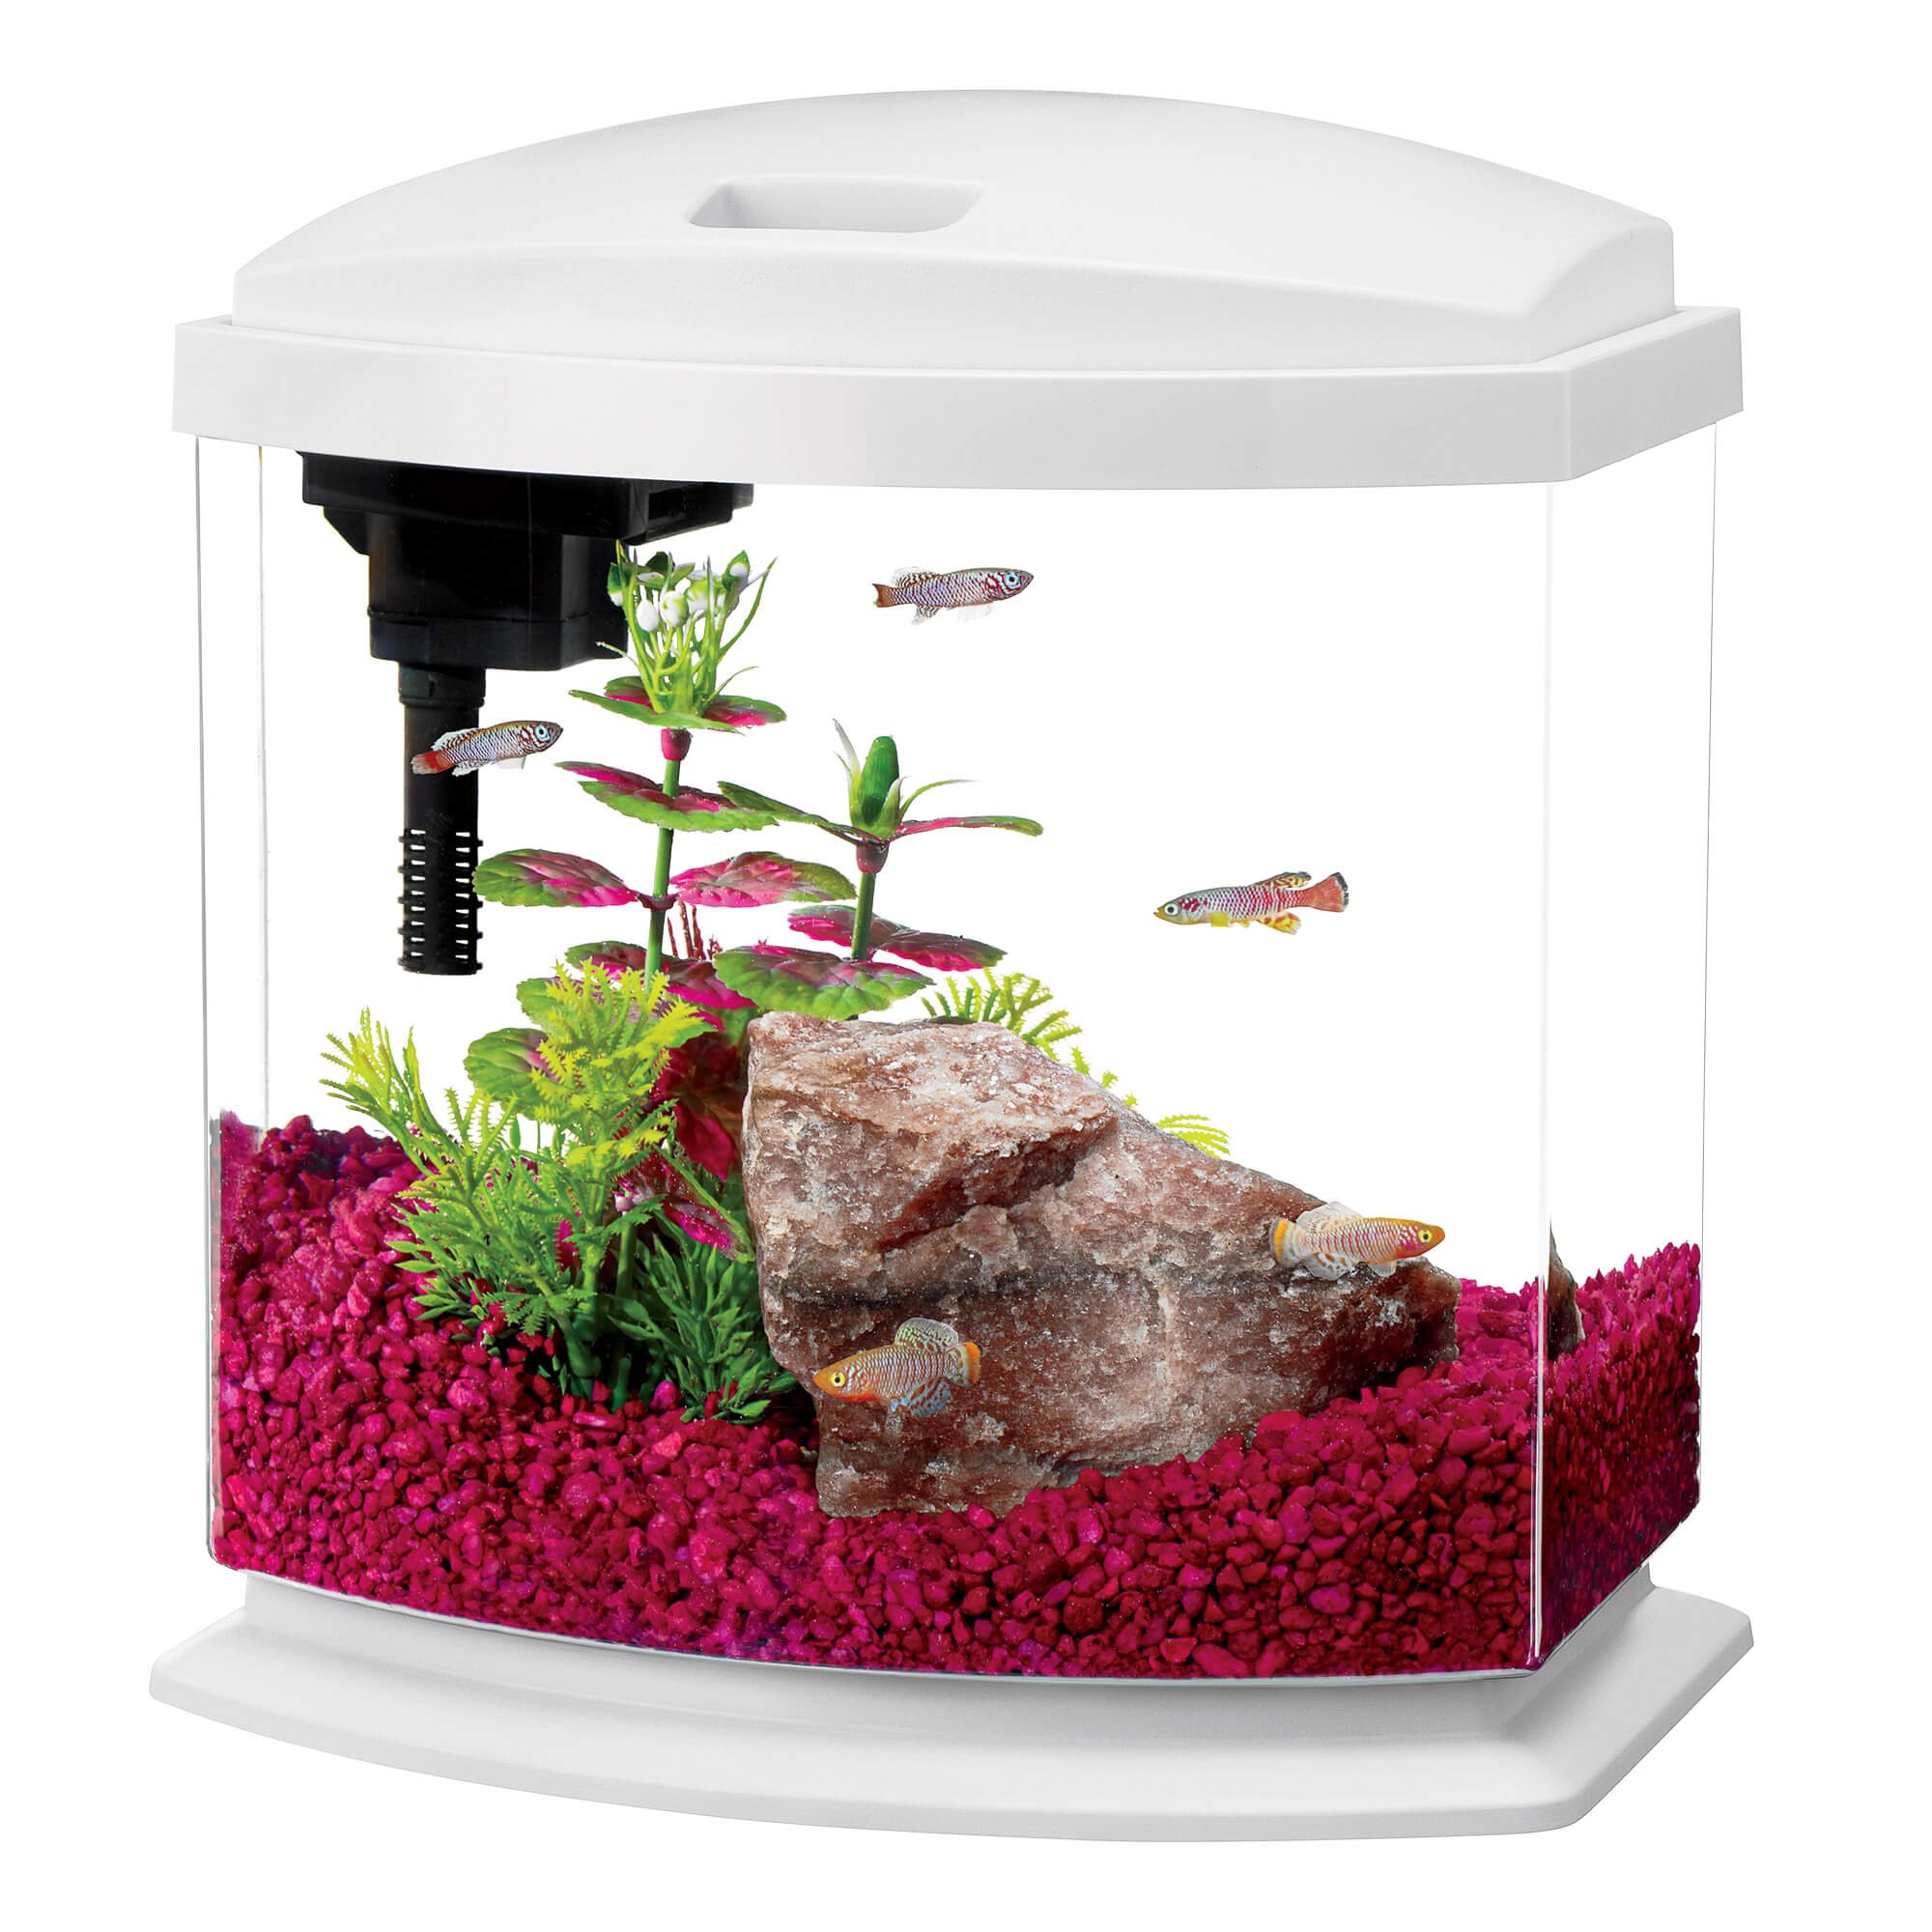 led lighting x ip and fish gallon for feeder kit walmart dia automatic power hawkeye aquarium filter h com food